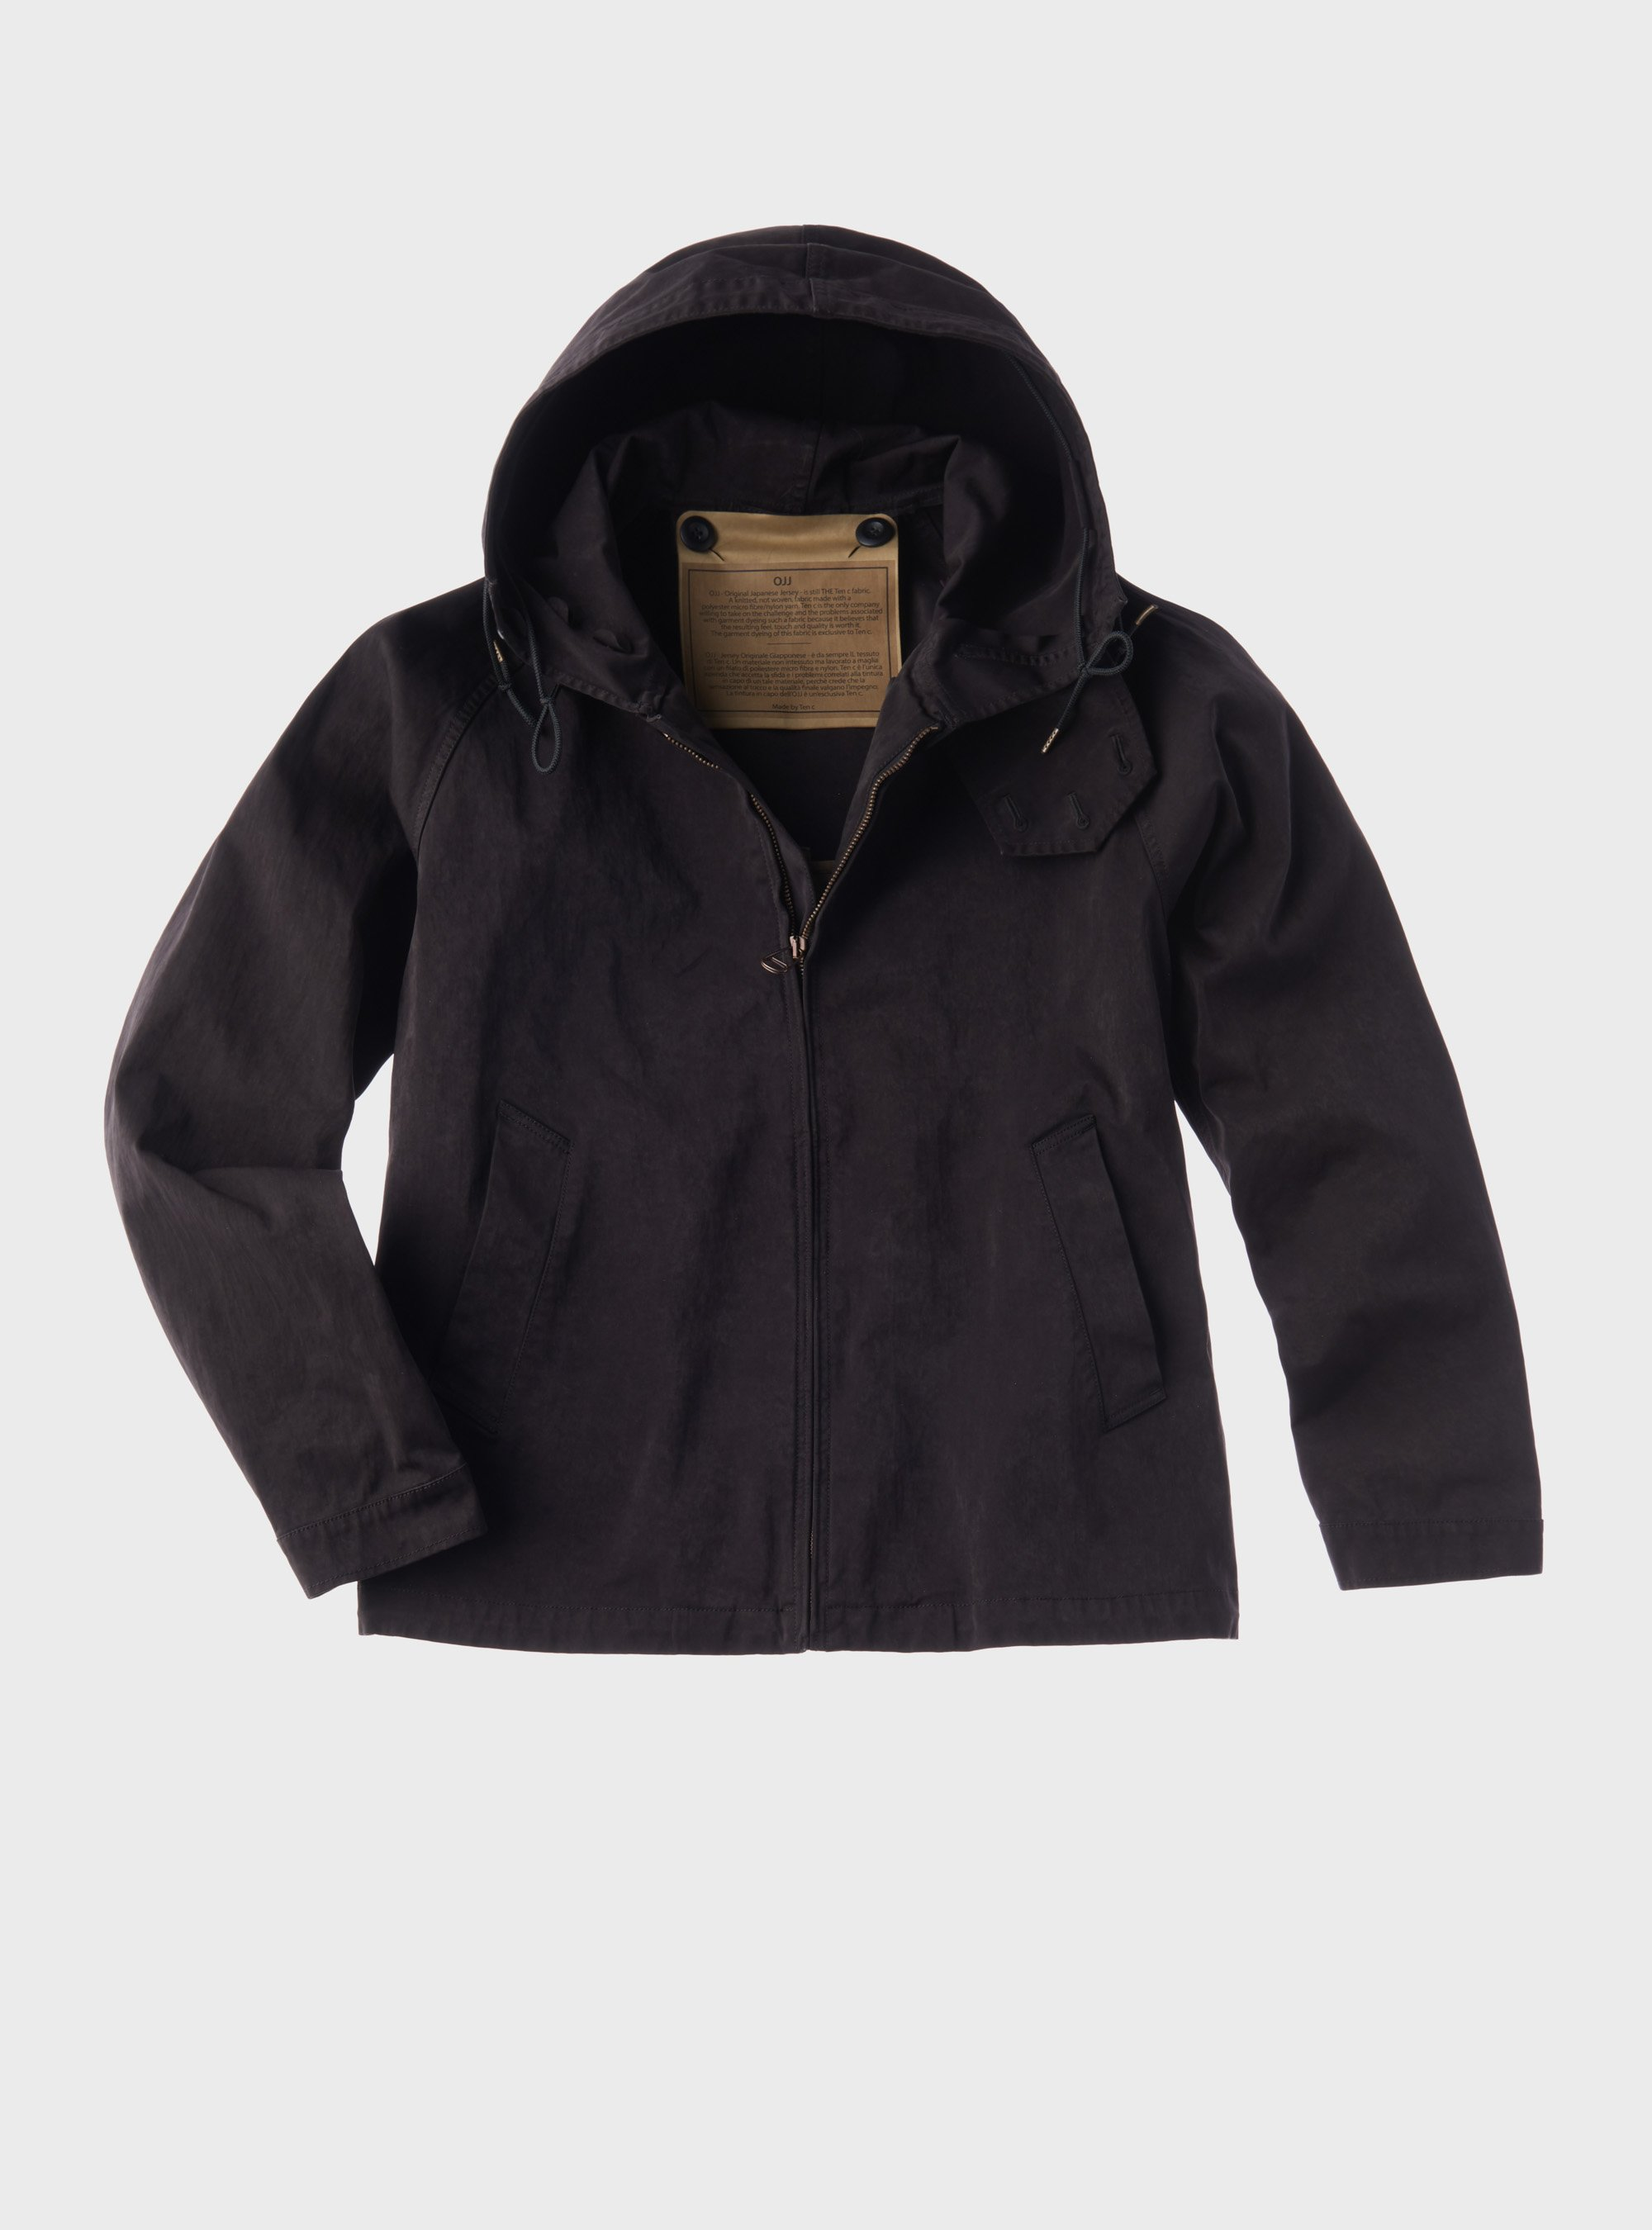 TEN C - ANORAK - Black - TEN C